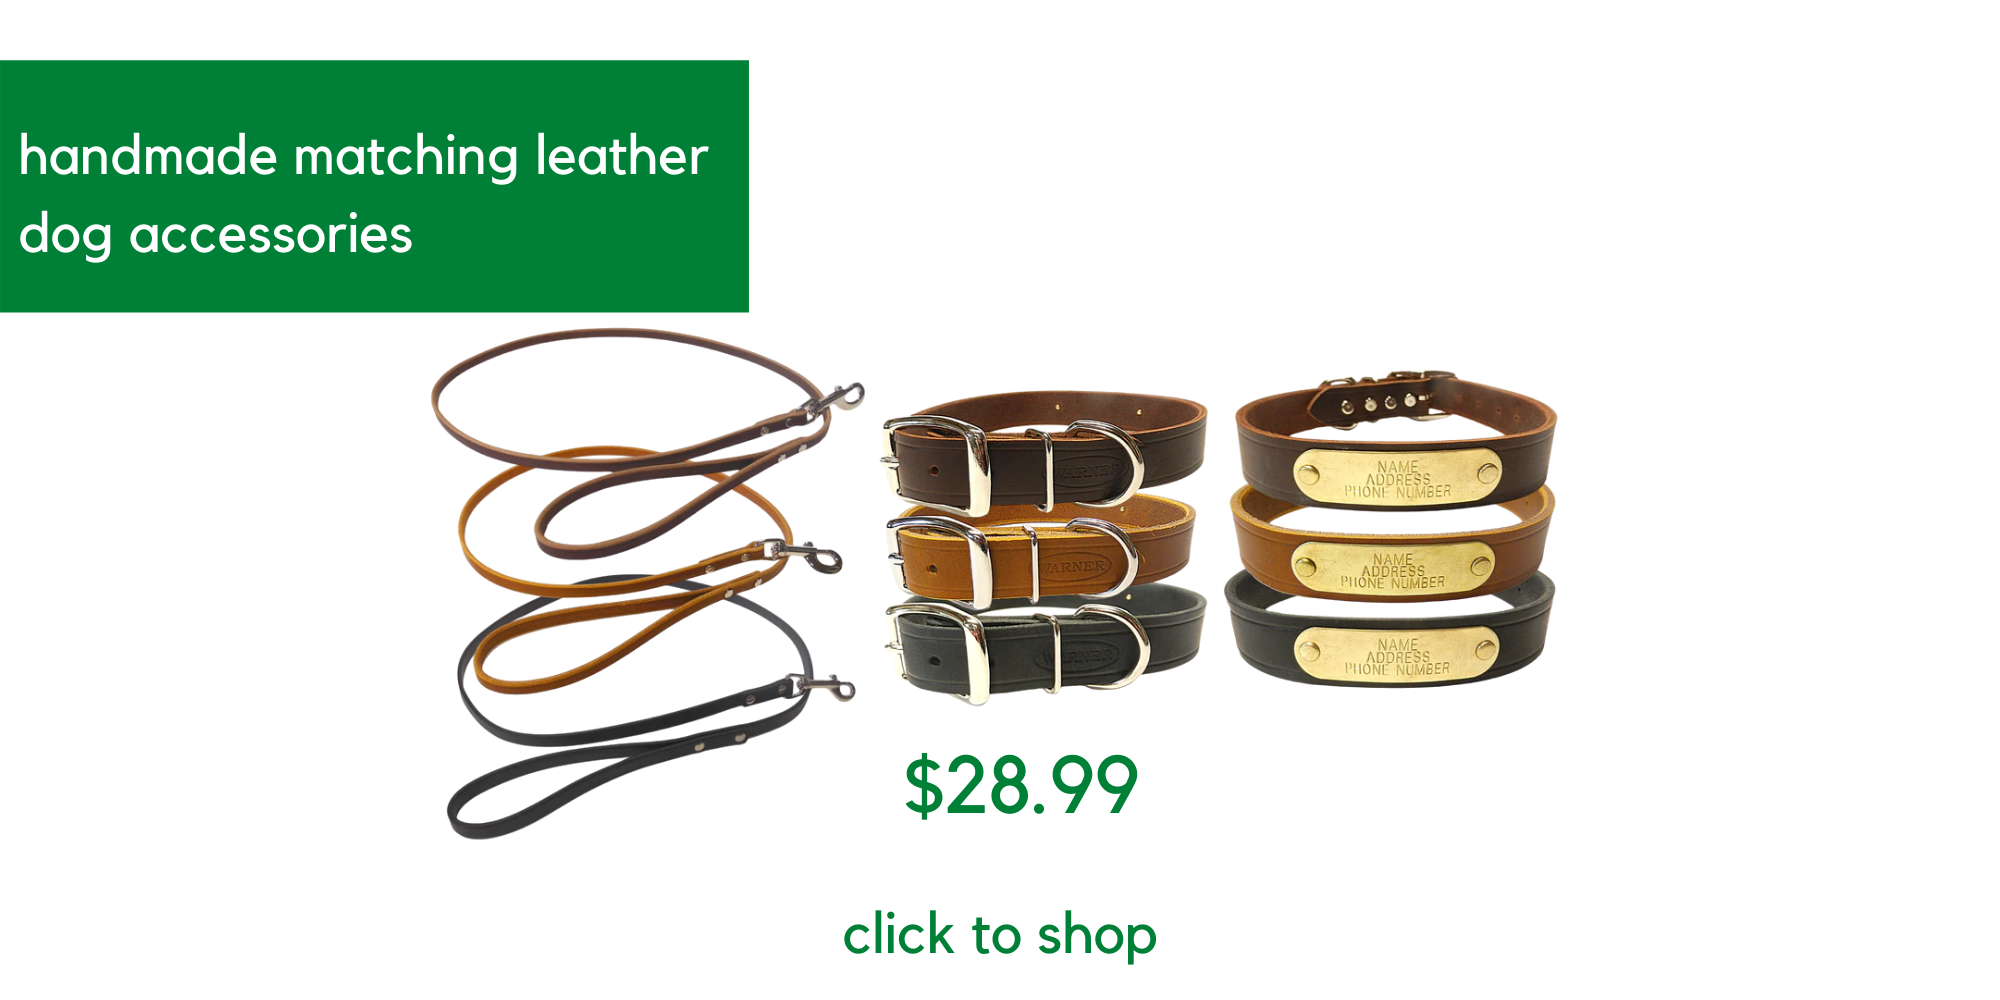 handmade leather dog accessories - click to see product page